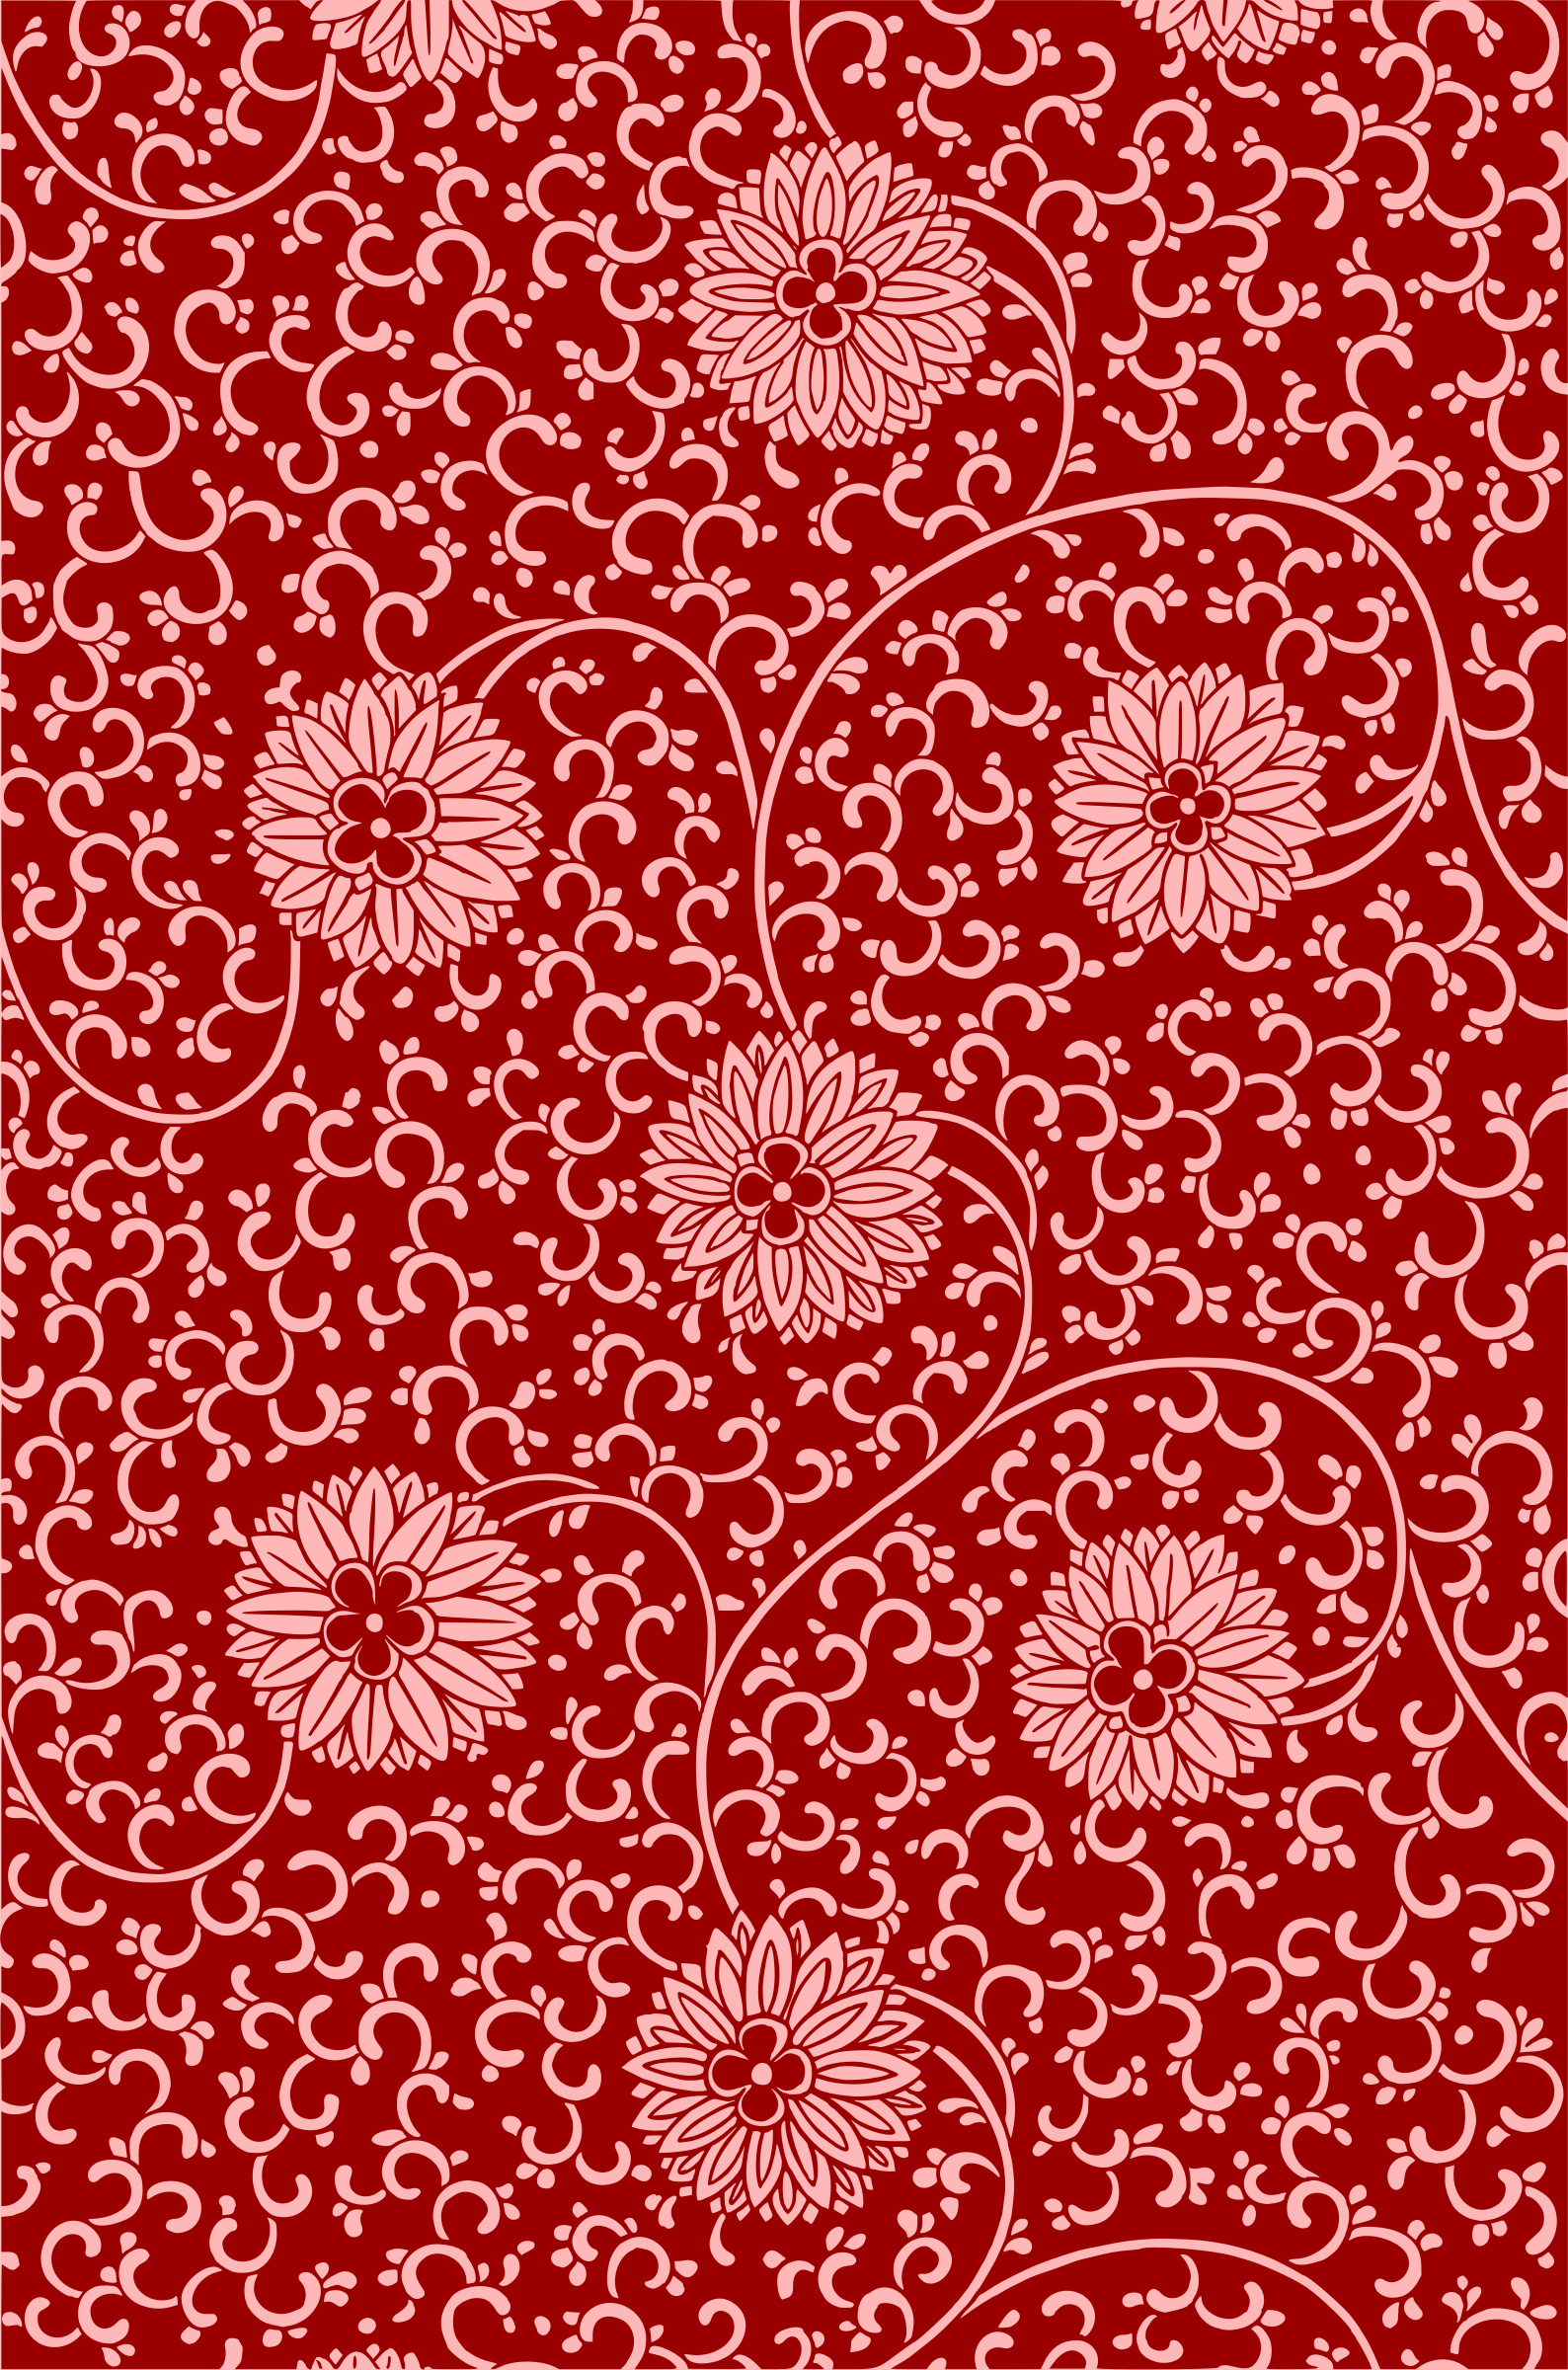 Floral pattern 2 (colour) by Firkin